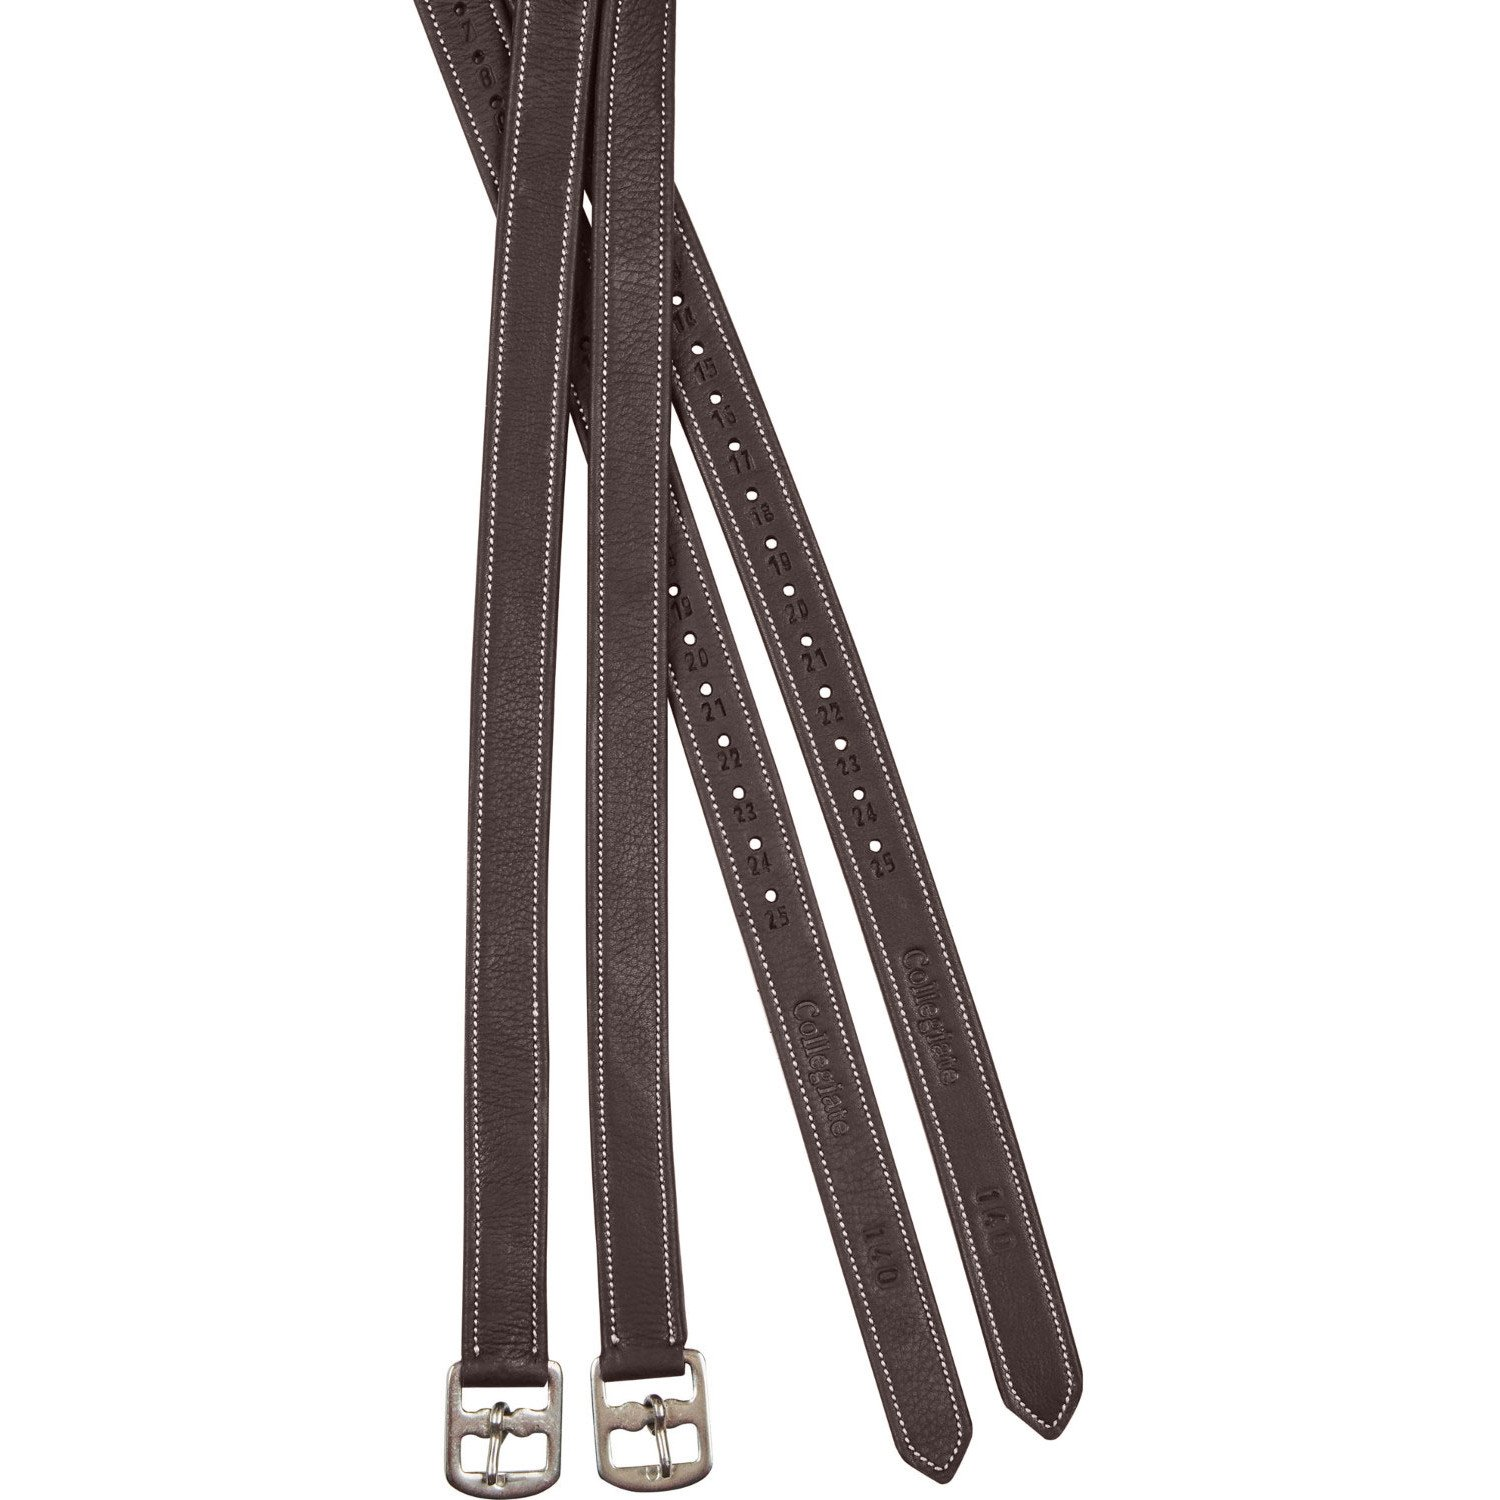 Collegiate Luxe Stirrup Leathers Brown 110Cm 43 Inch